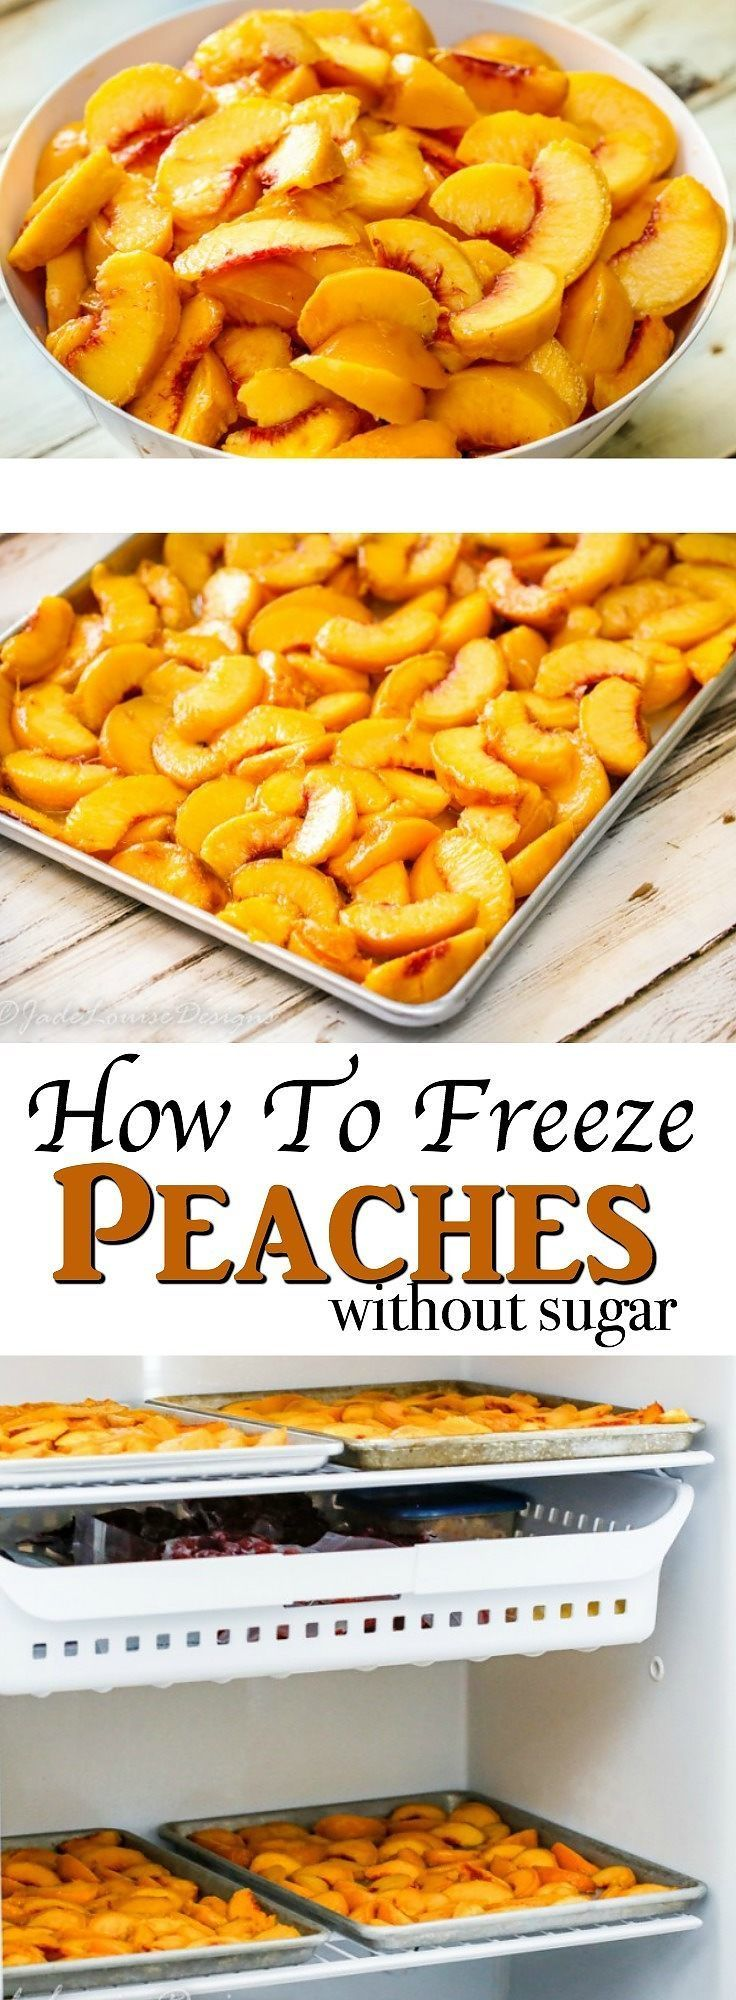 Learn How to *freeze peaches without Sugar*! Freezing peaches without sugar comes really handy when you have a ton of fresh fresh peaches to process before they go bad. It allows  you to have ripe peaches all year long!